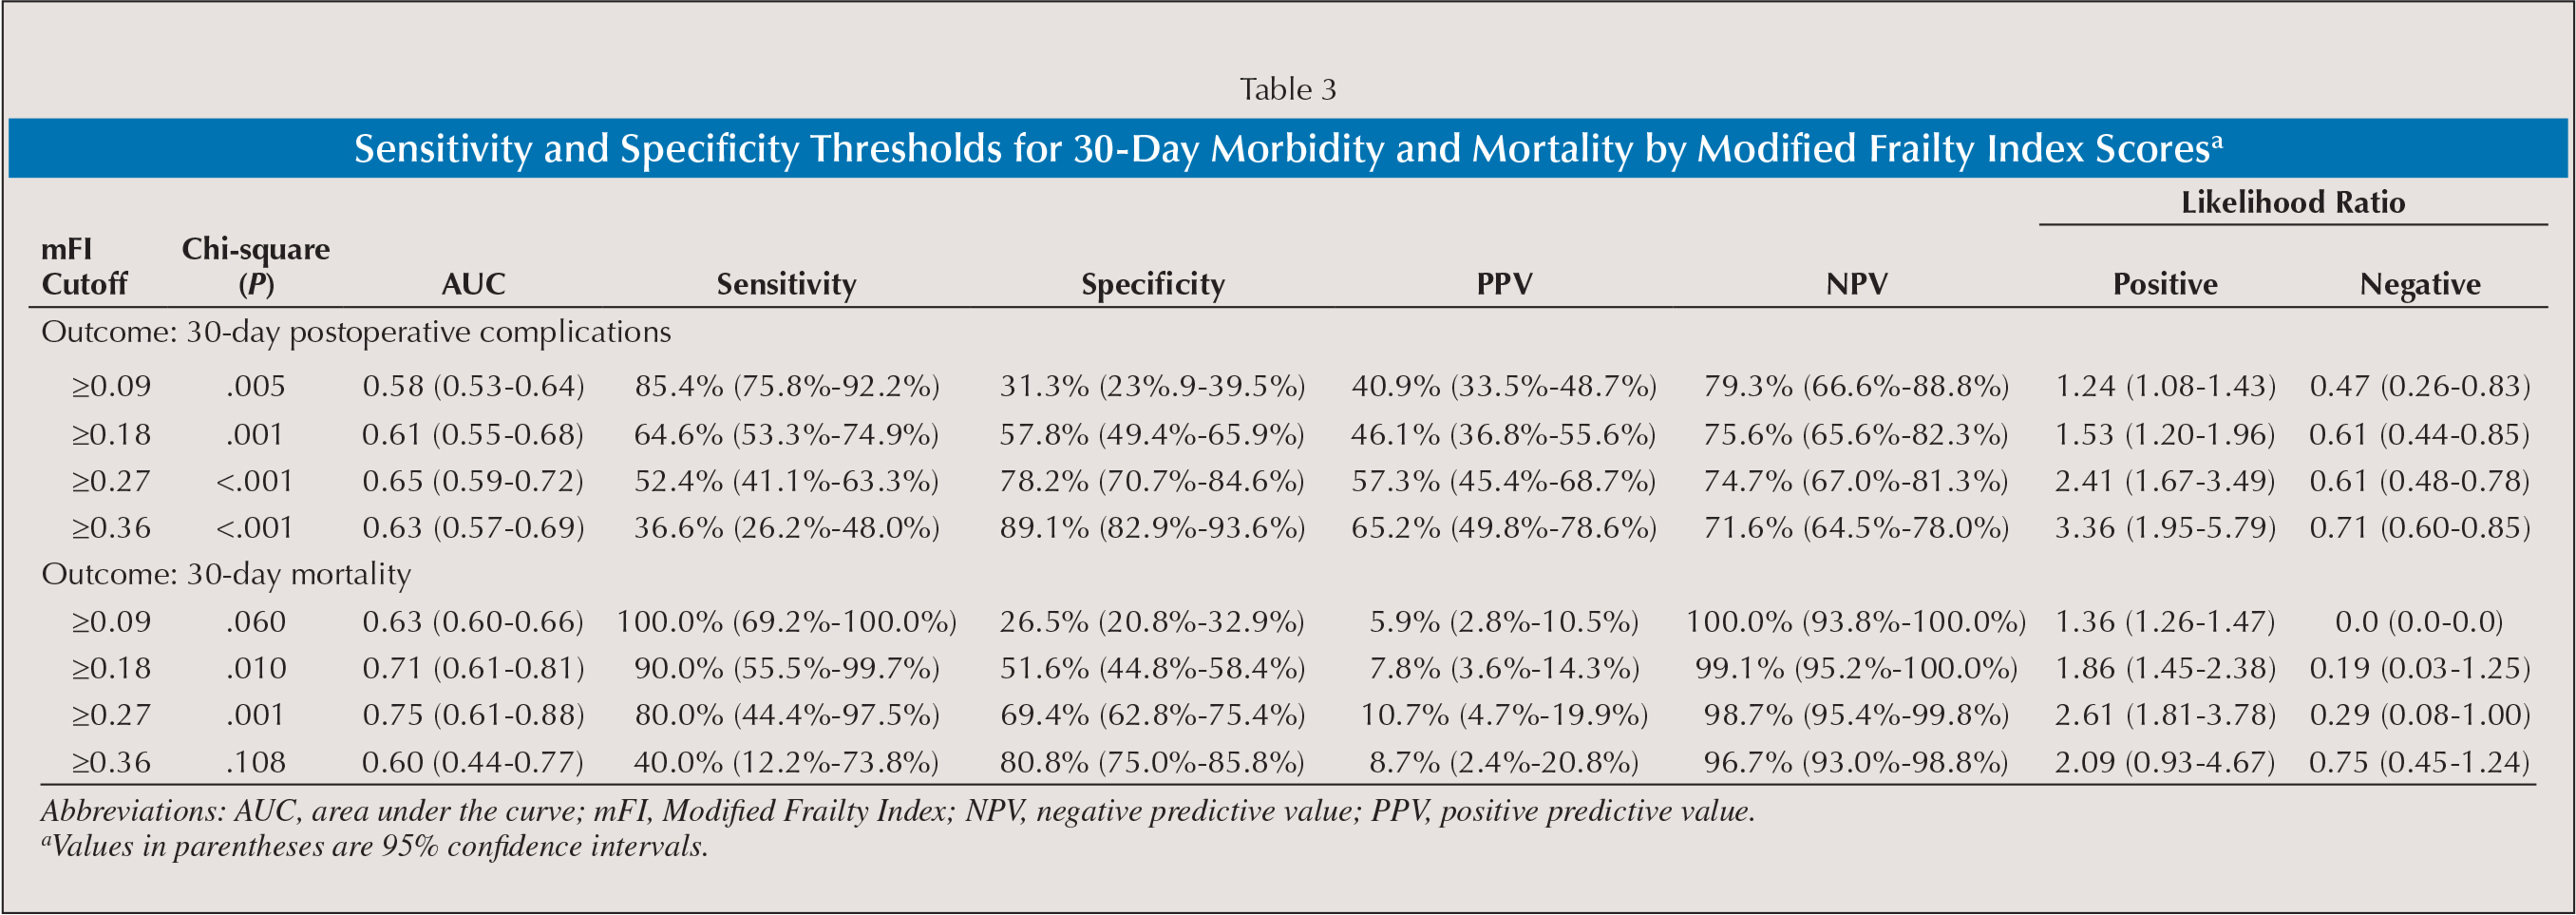 Sensitivity and Specificity Thresholds for 30-Day Morbidity and Mortality by Modified Frailty Index Scoresa